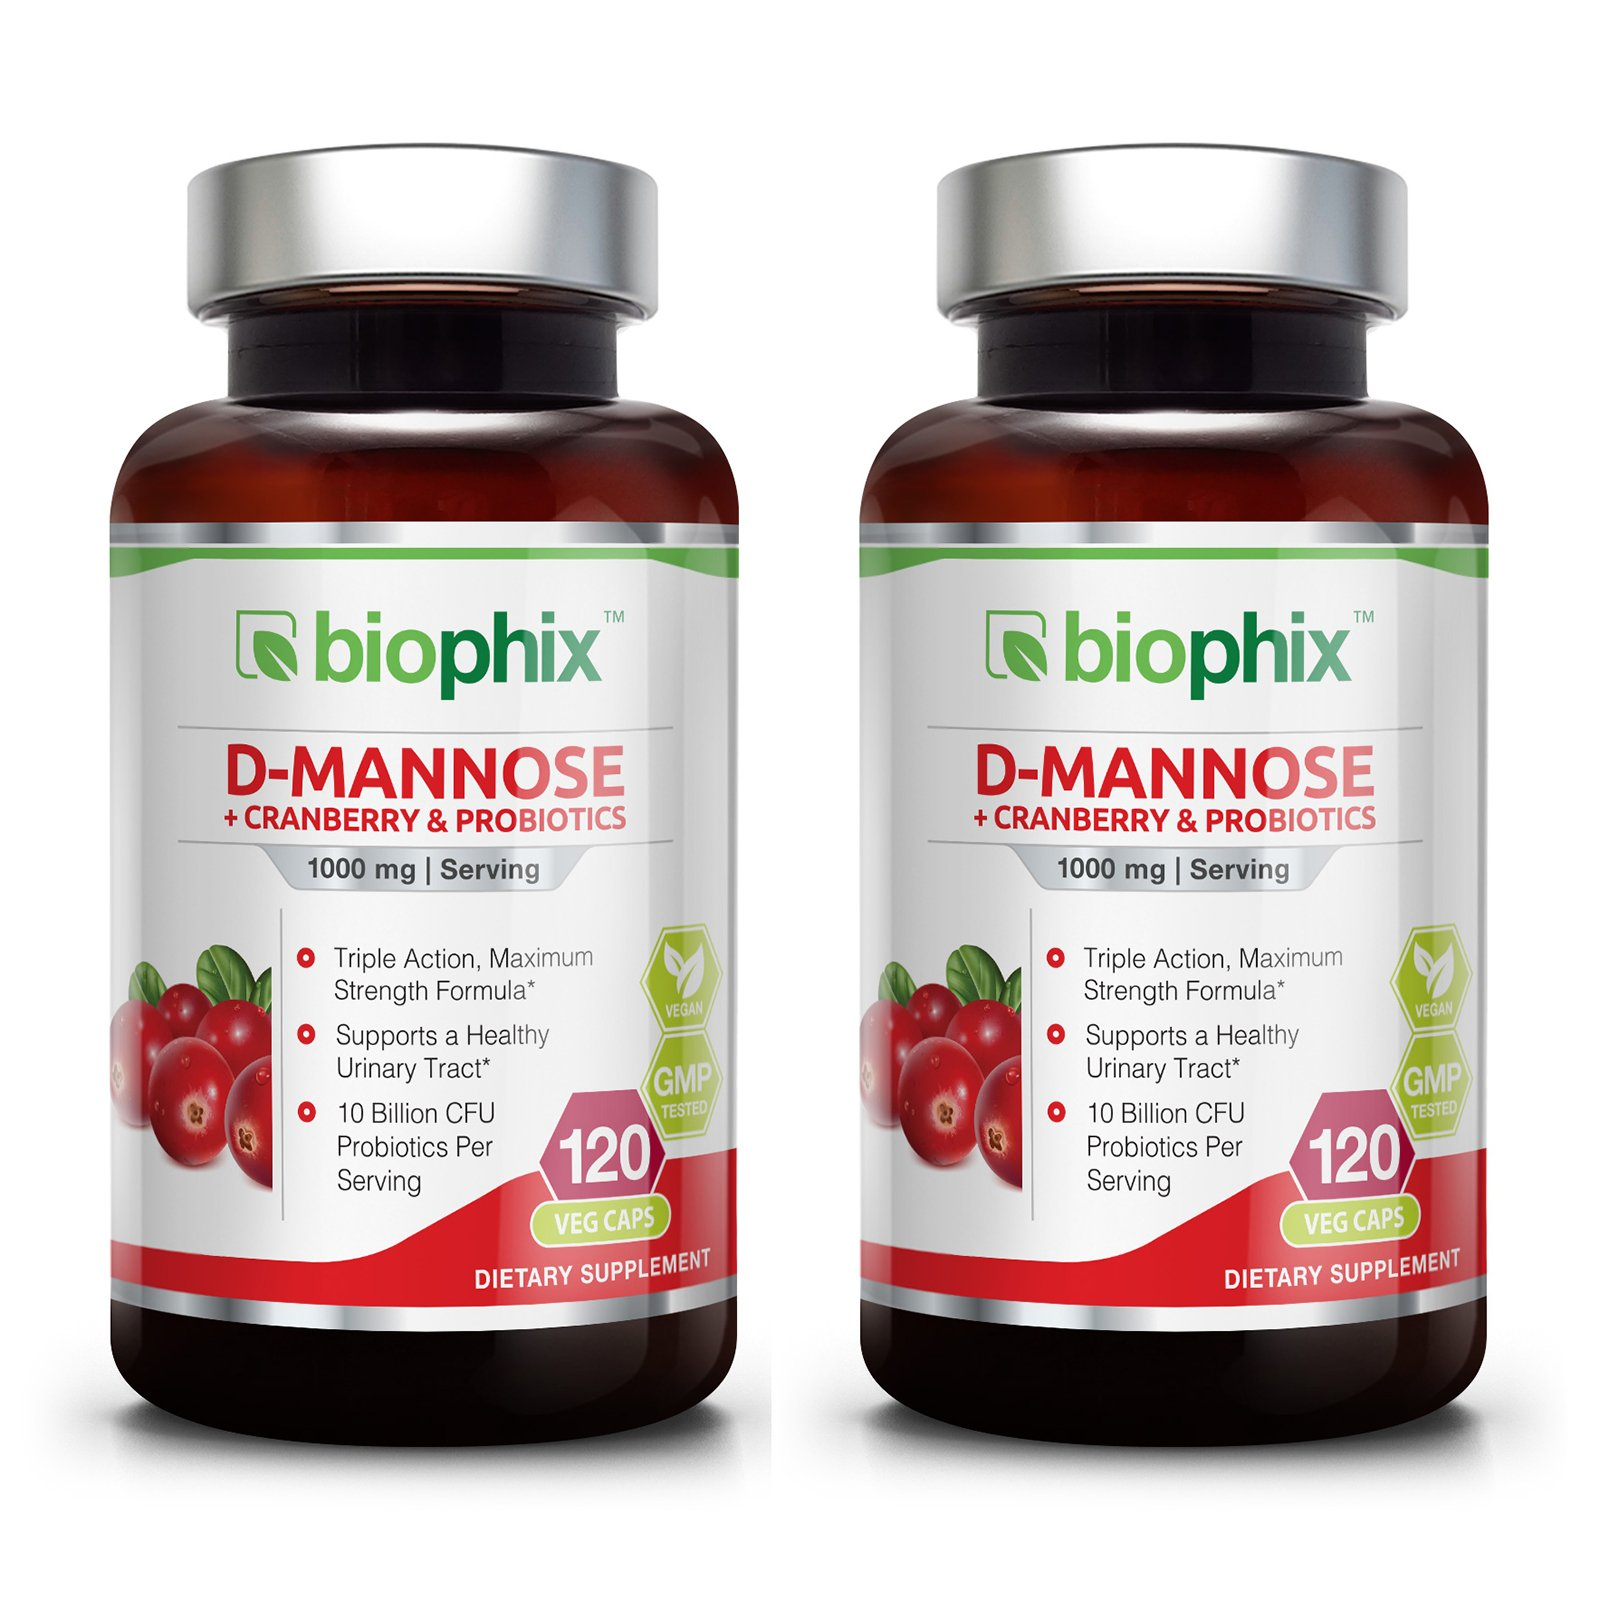 2 D-Mannose Plus Cranberry and Probiotics 1000 mg 120 Vcaps Pack - Urinary Tract Health | Bladder Infection | Support UTI Prevention | Digestive Health